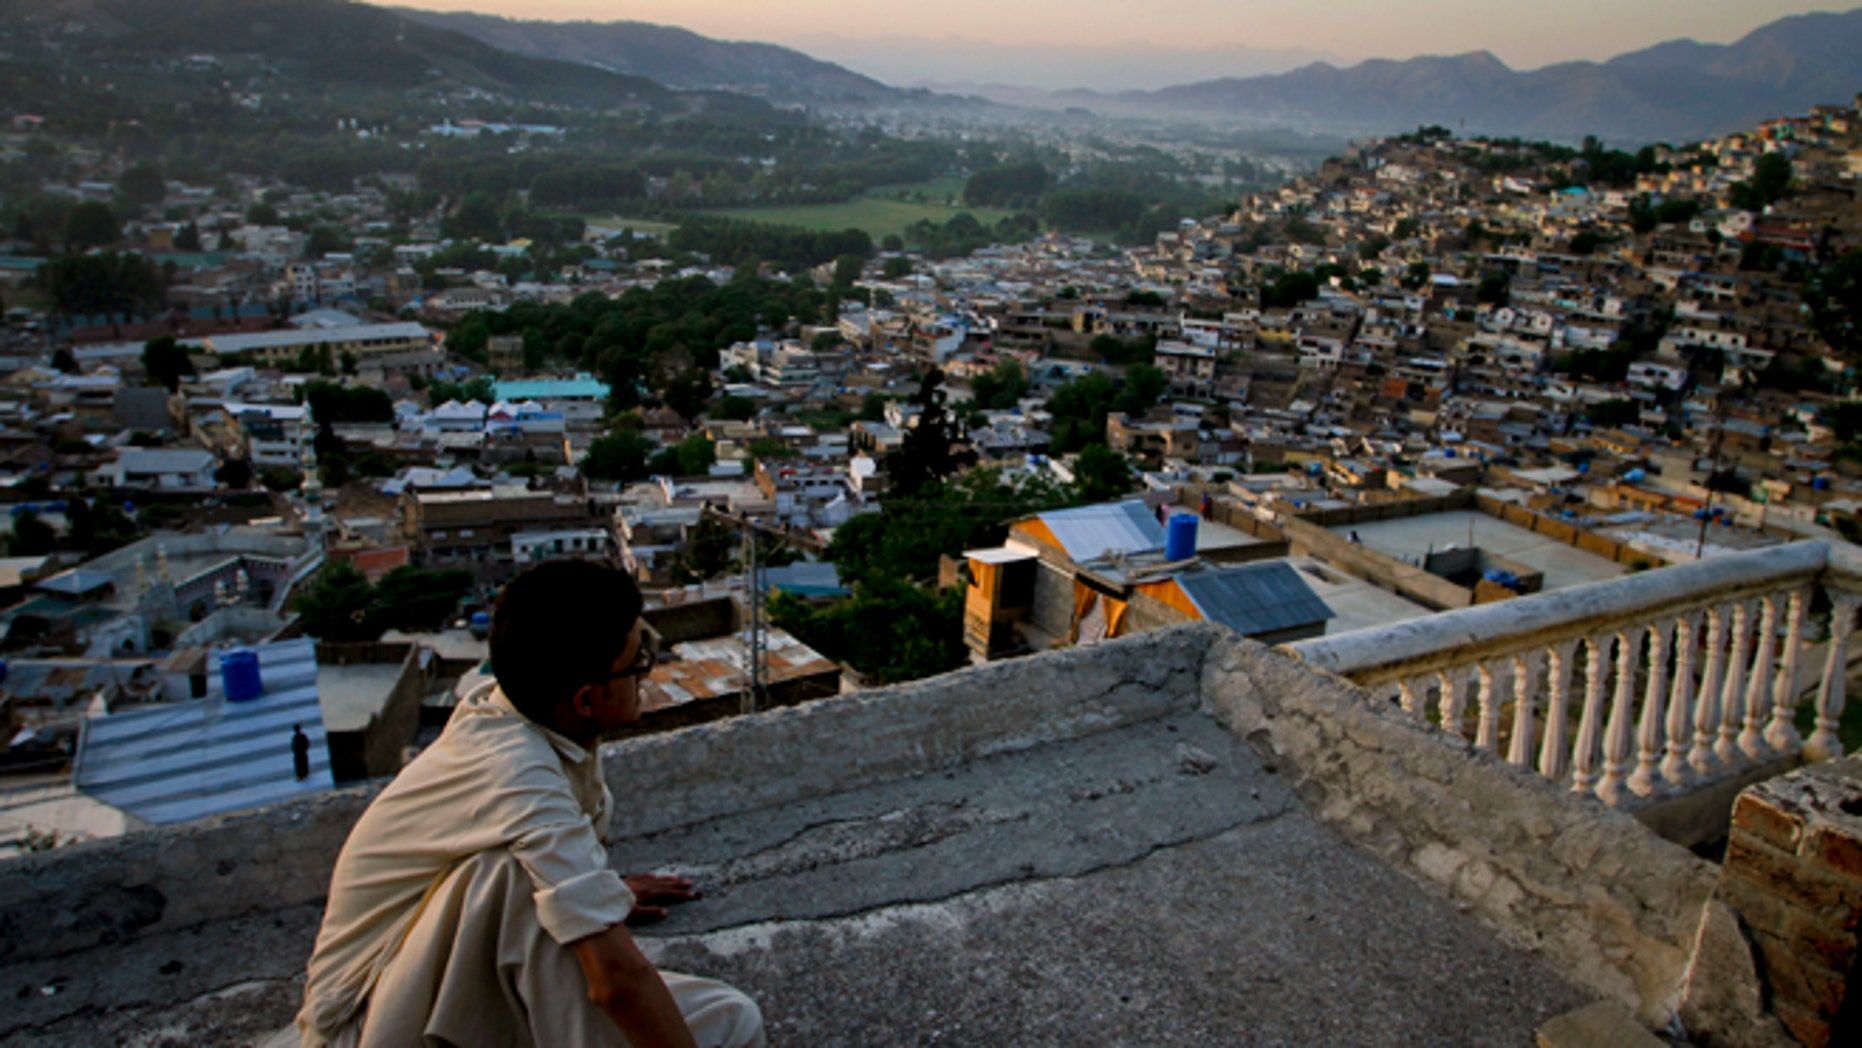 In this May 15, 2011 file photo, Ali Raza sits on the rooftop of his house as he views the city of Abbottabad, Pakistan. Pakistani officials say the government plans to build a recreation complex in the town.